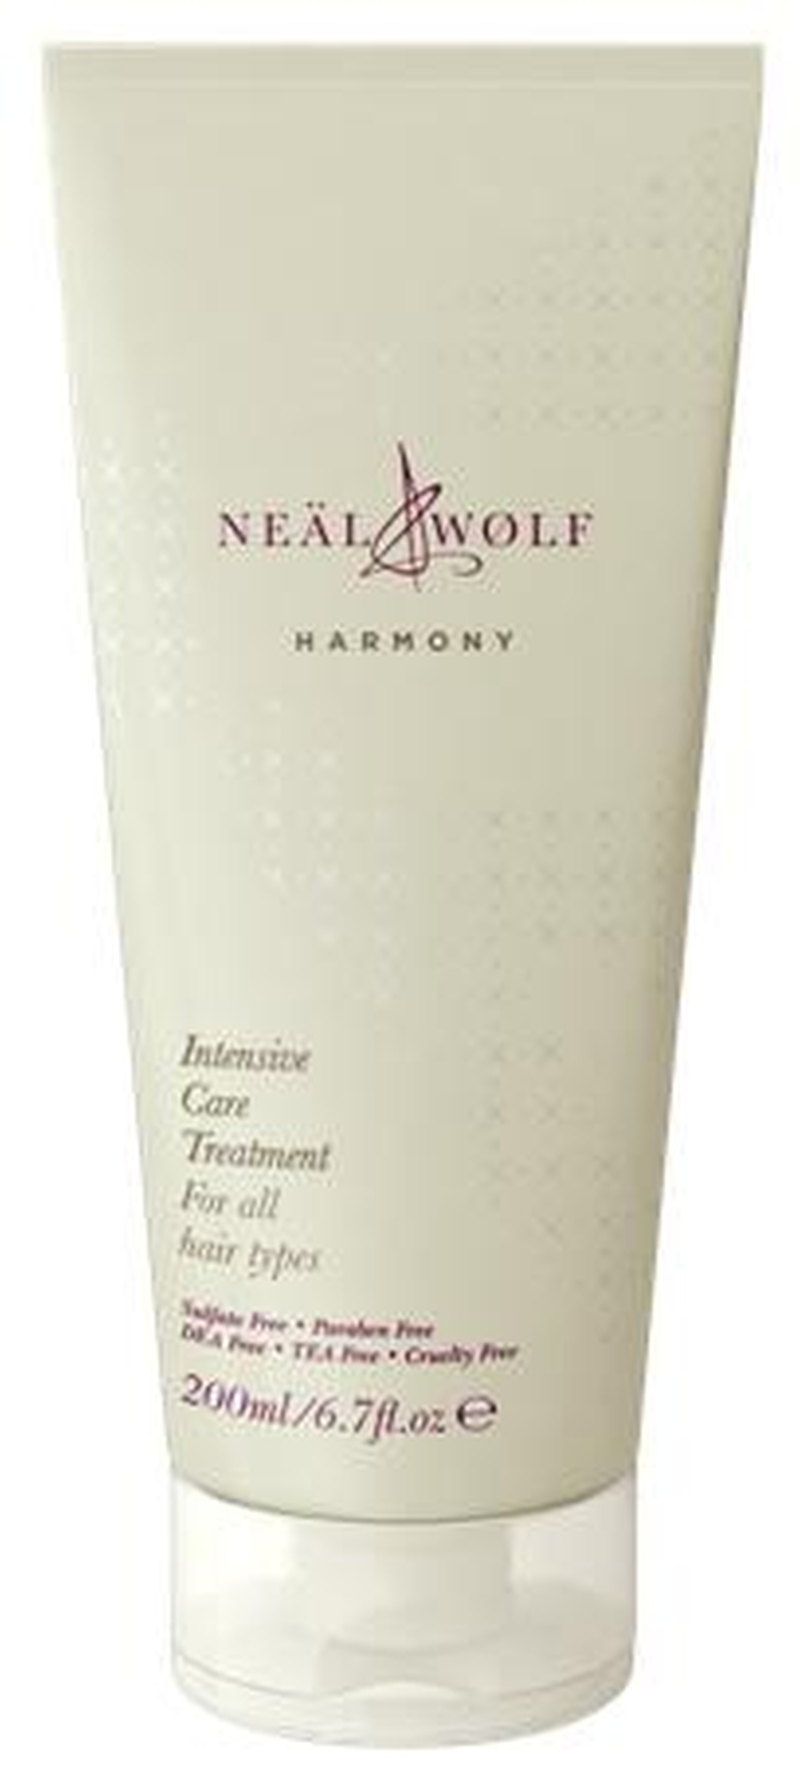 Neal and Wolf Intensive Care Treatment 200ml